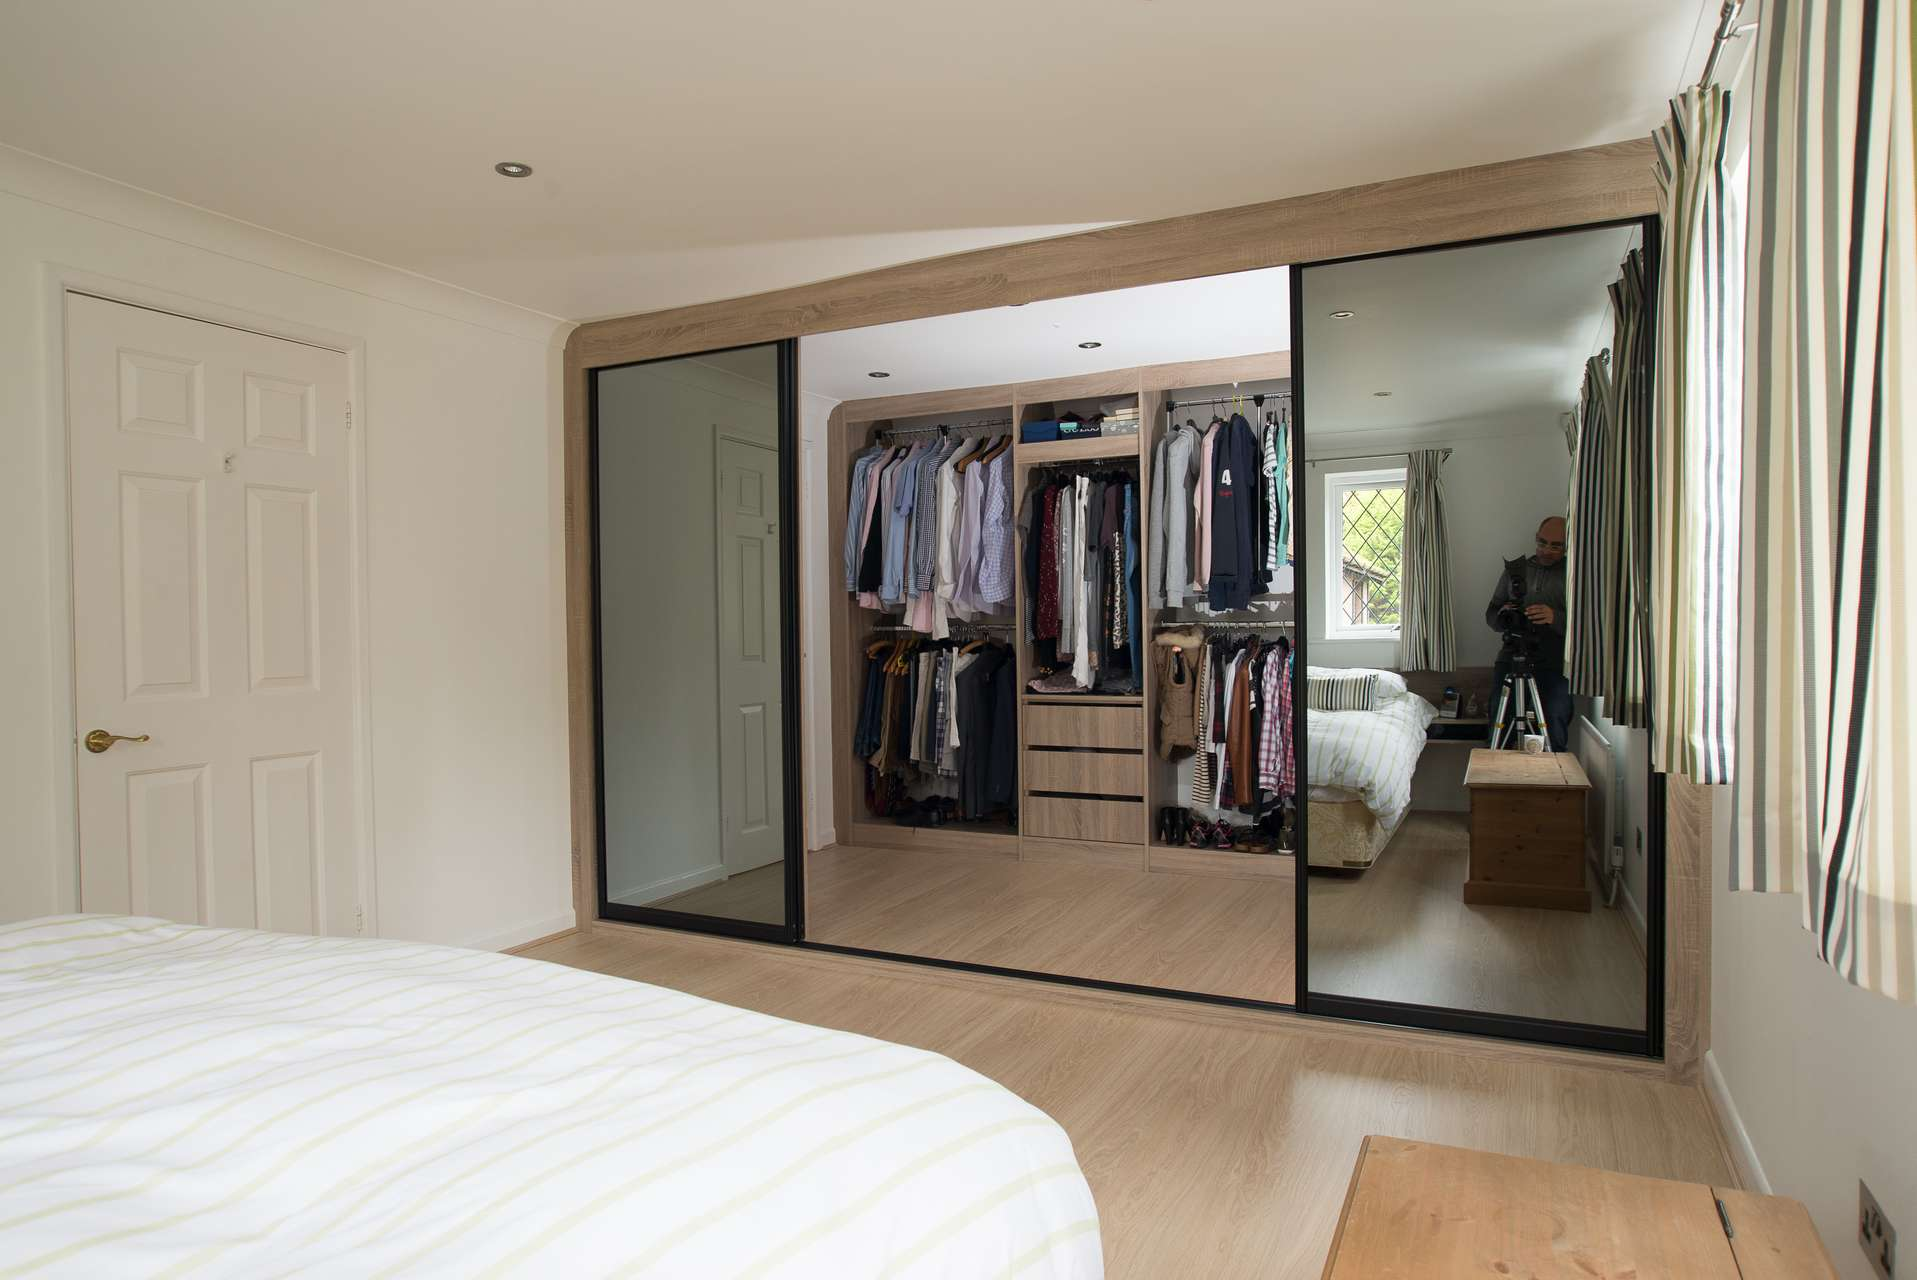 Sliding Door Walk in Wardrobe - Middle doors open